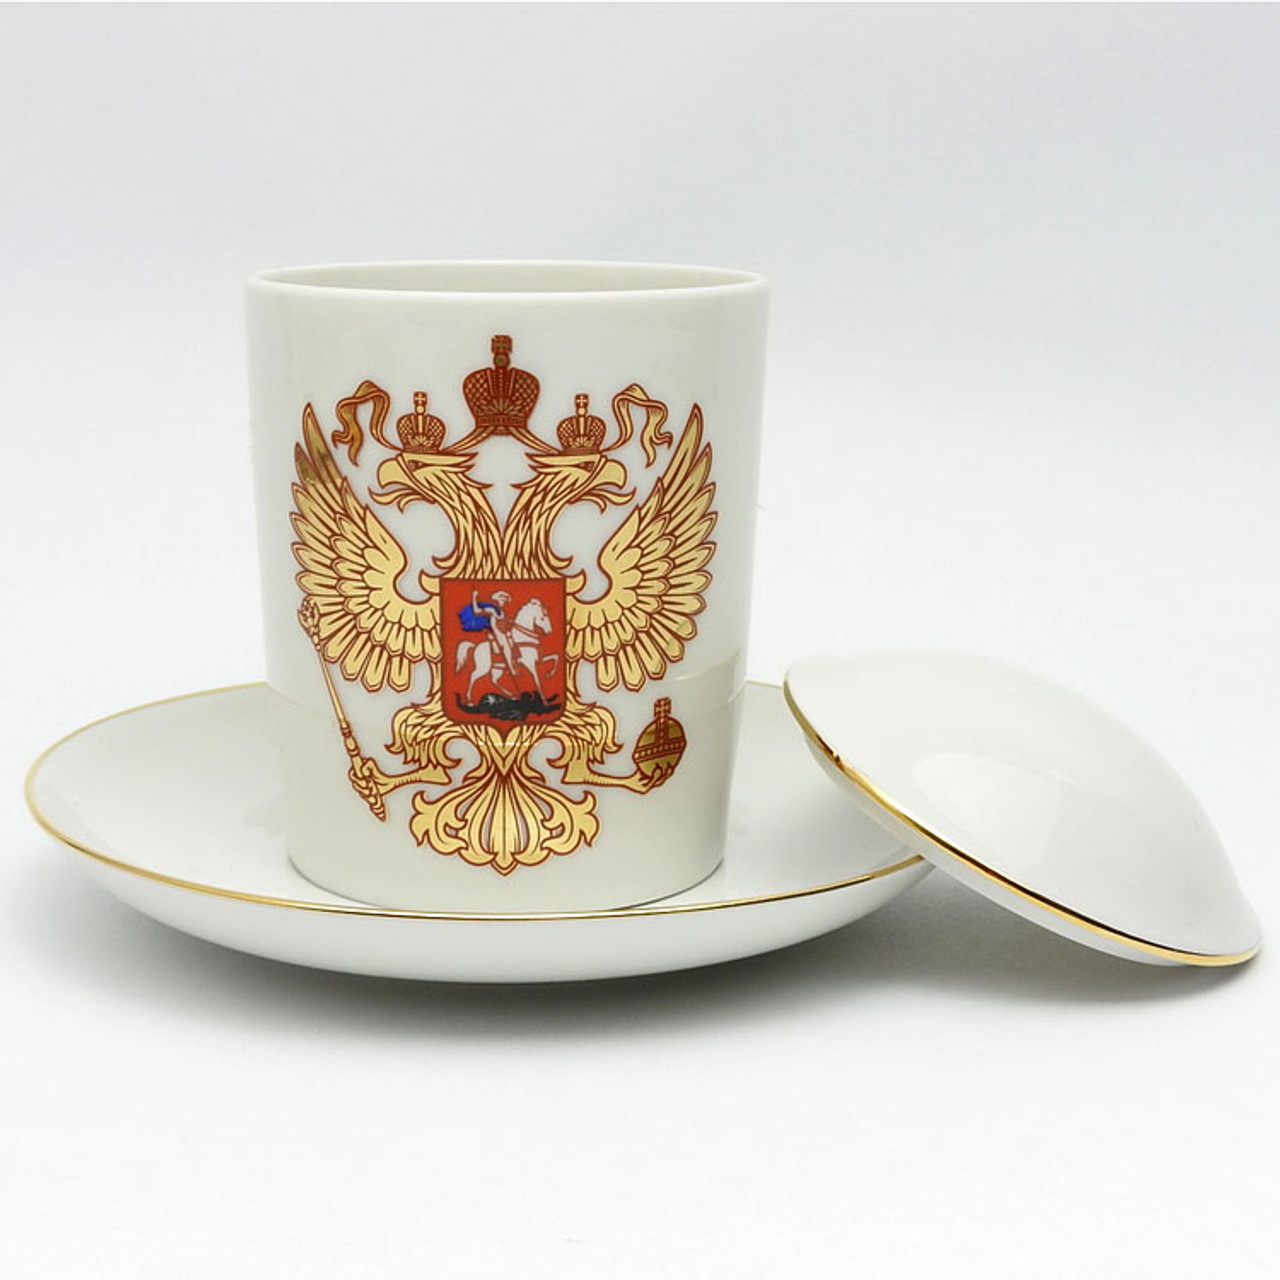 Russian Coat of Arms Double-Headed Eagle Covered Mug and Saucer